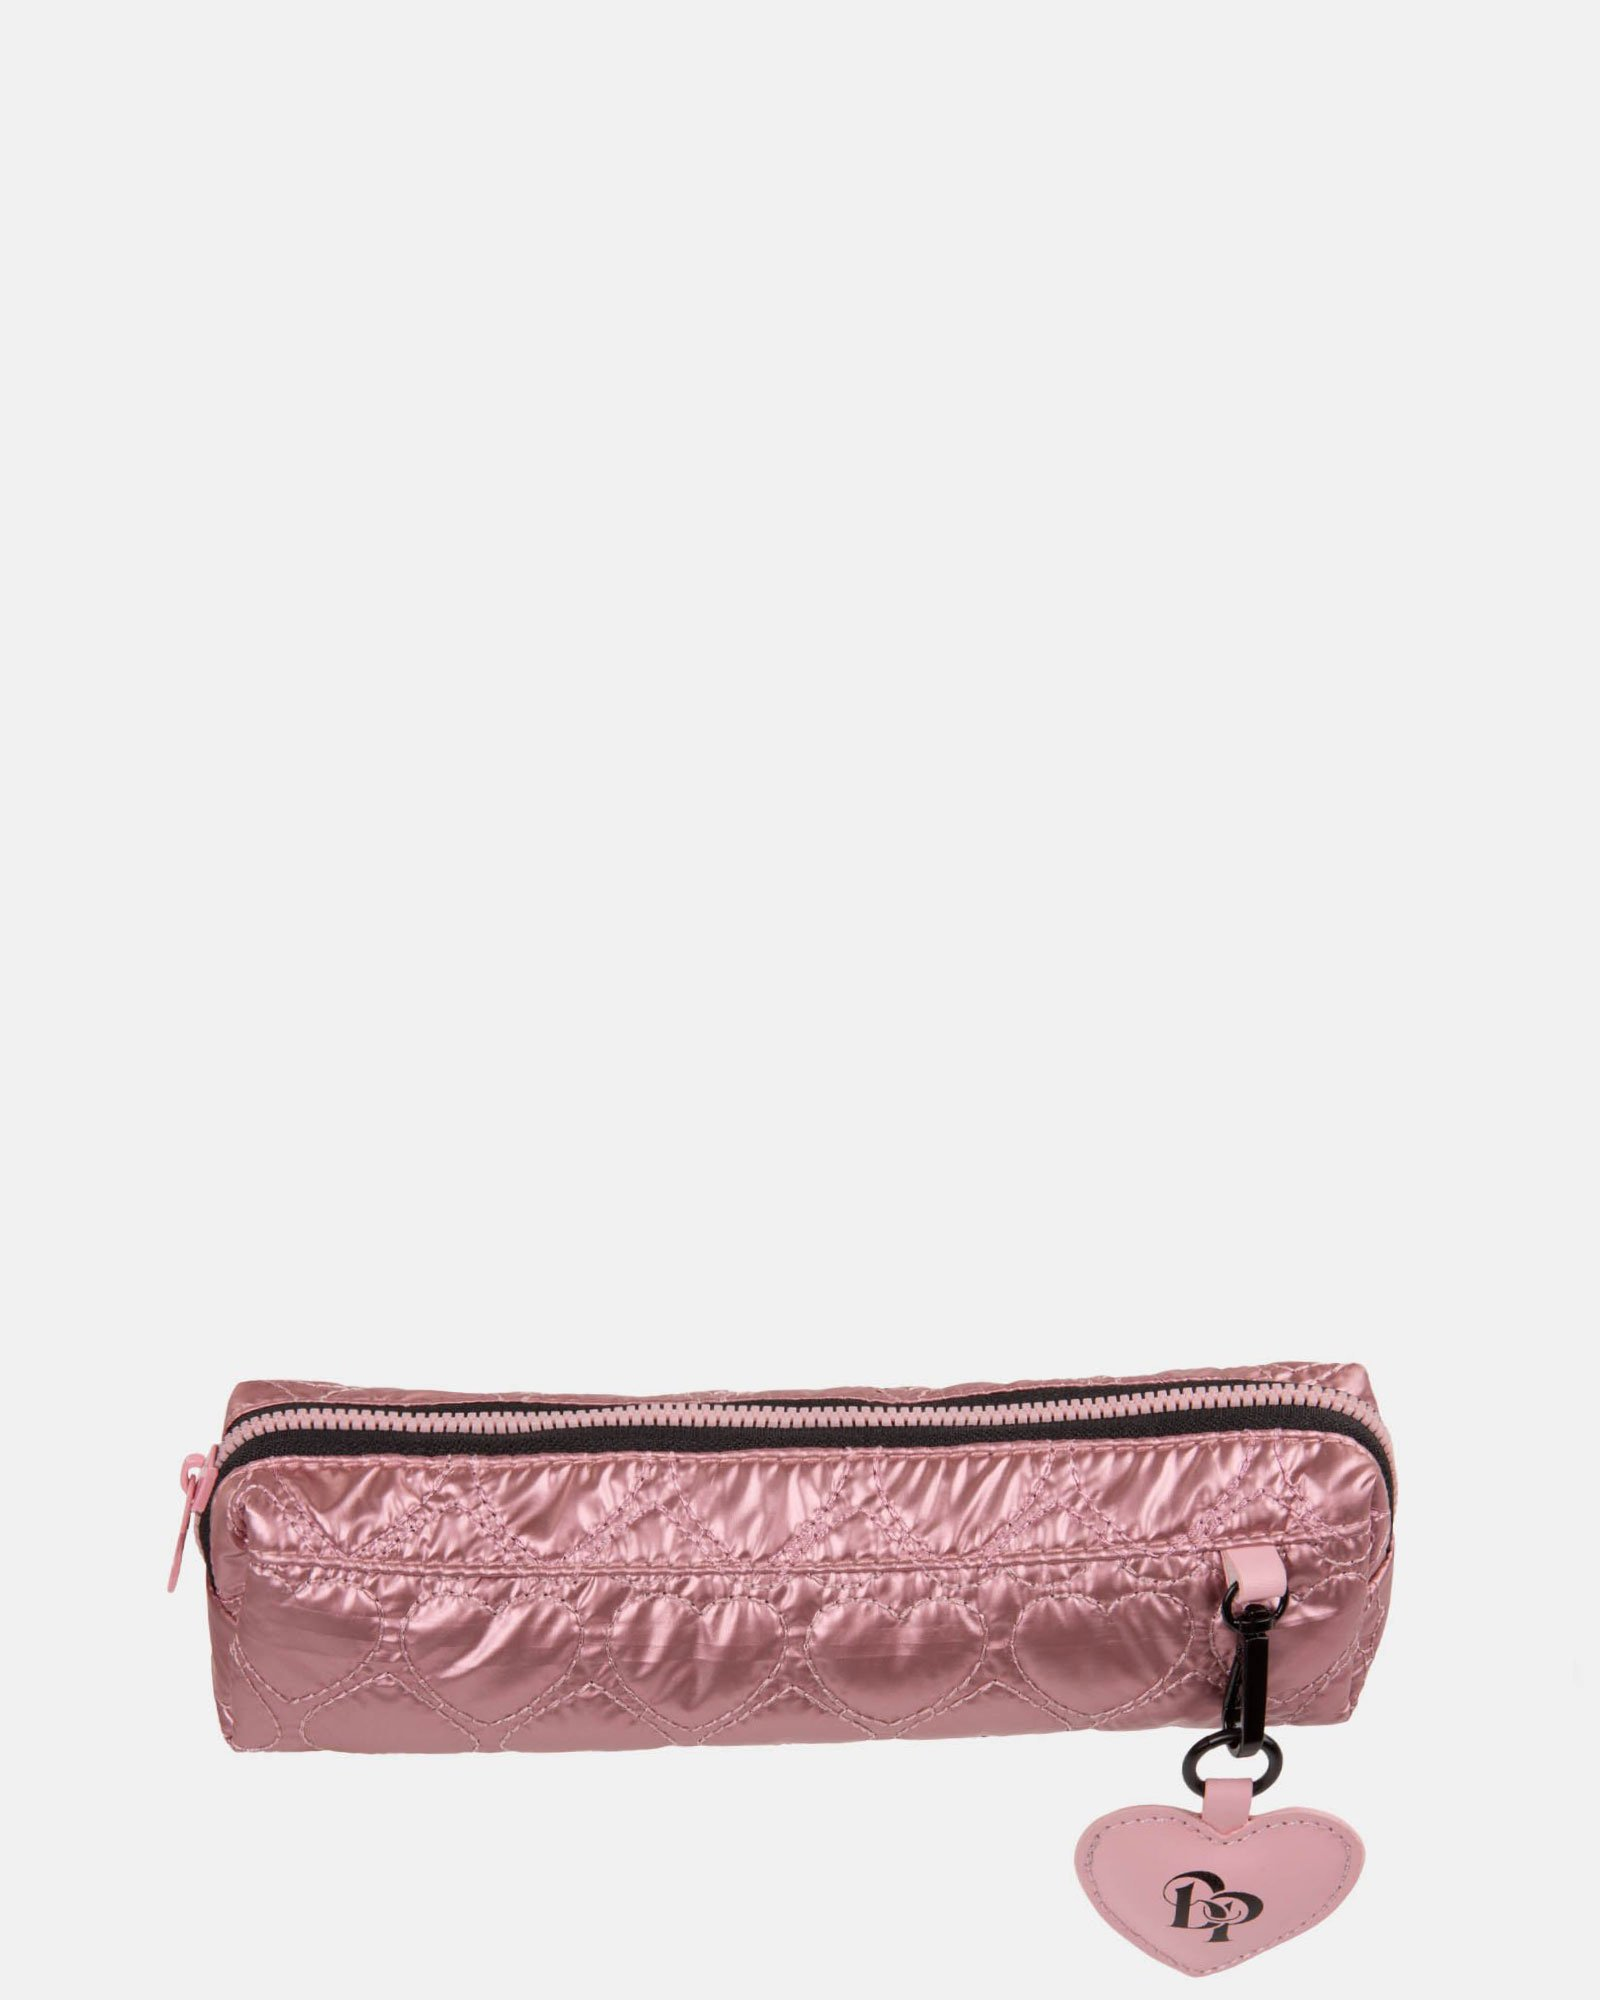 BLACKPINK - Be Still My Heart Collection - A stylish pencil case to store your pens, make-up items and smaller accessories - pink - BLACKPINK - Zoom